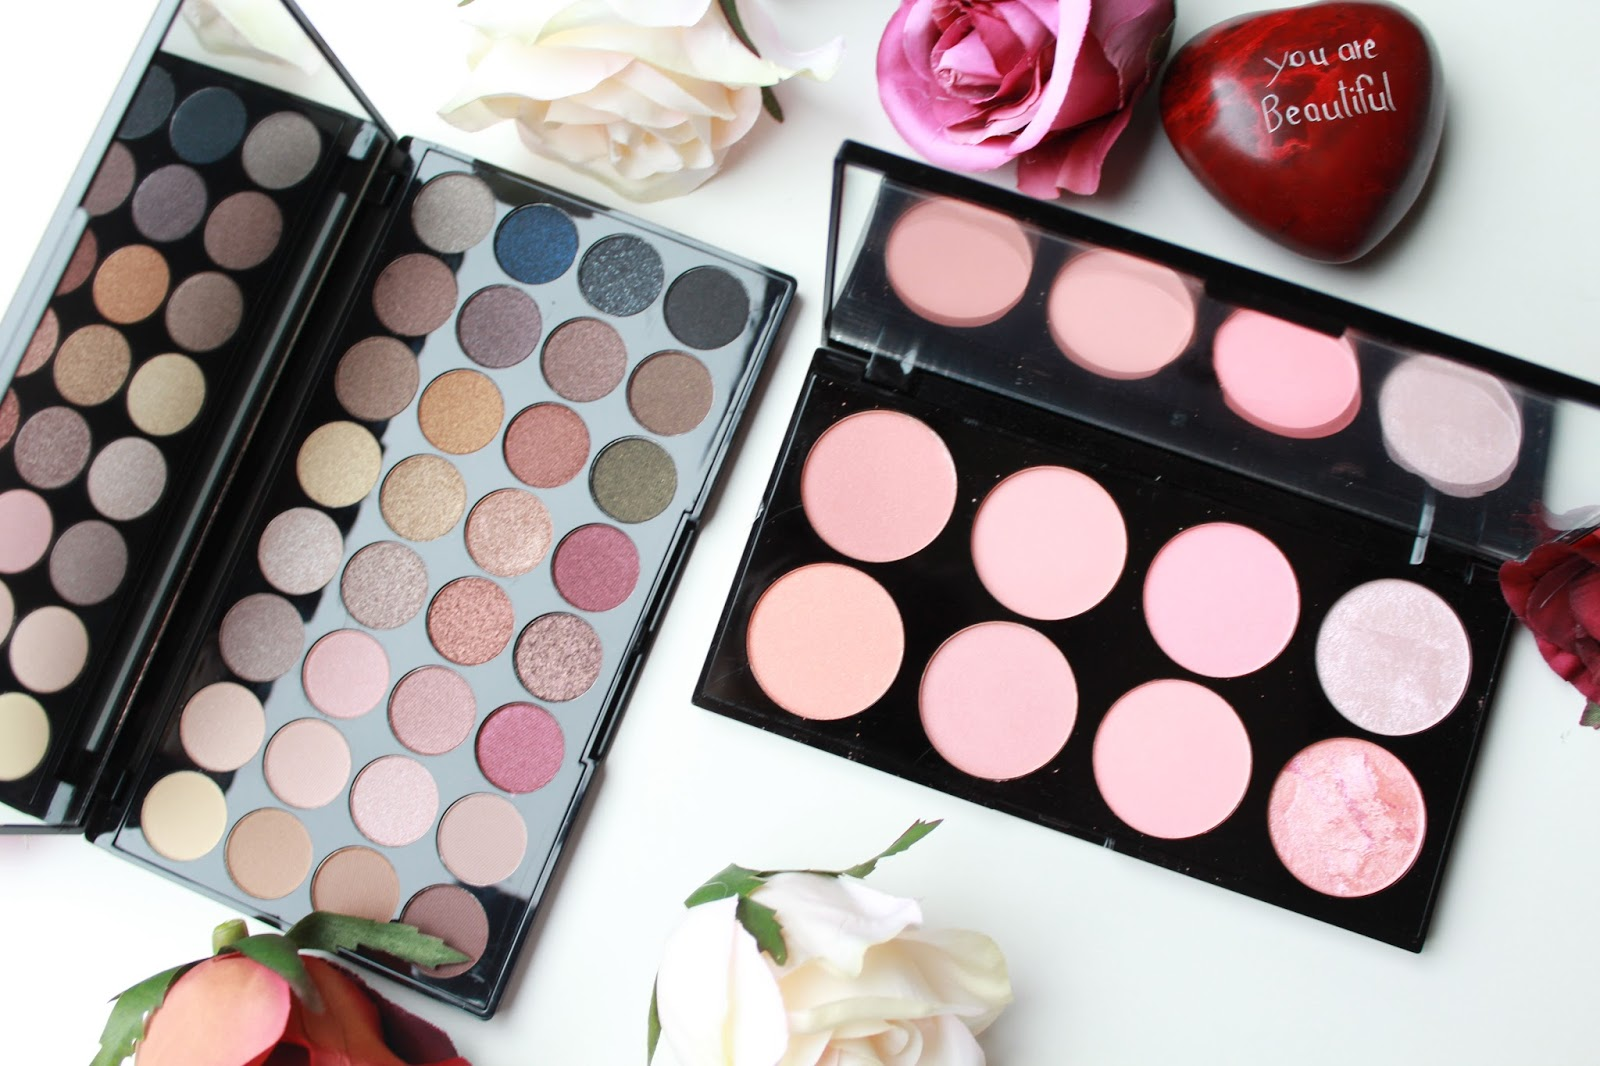 The Makeup Revolution Eyeshadow and Contour Palettes